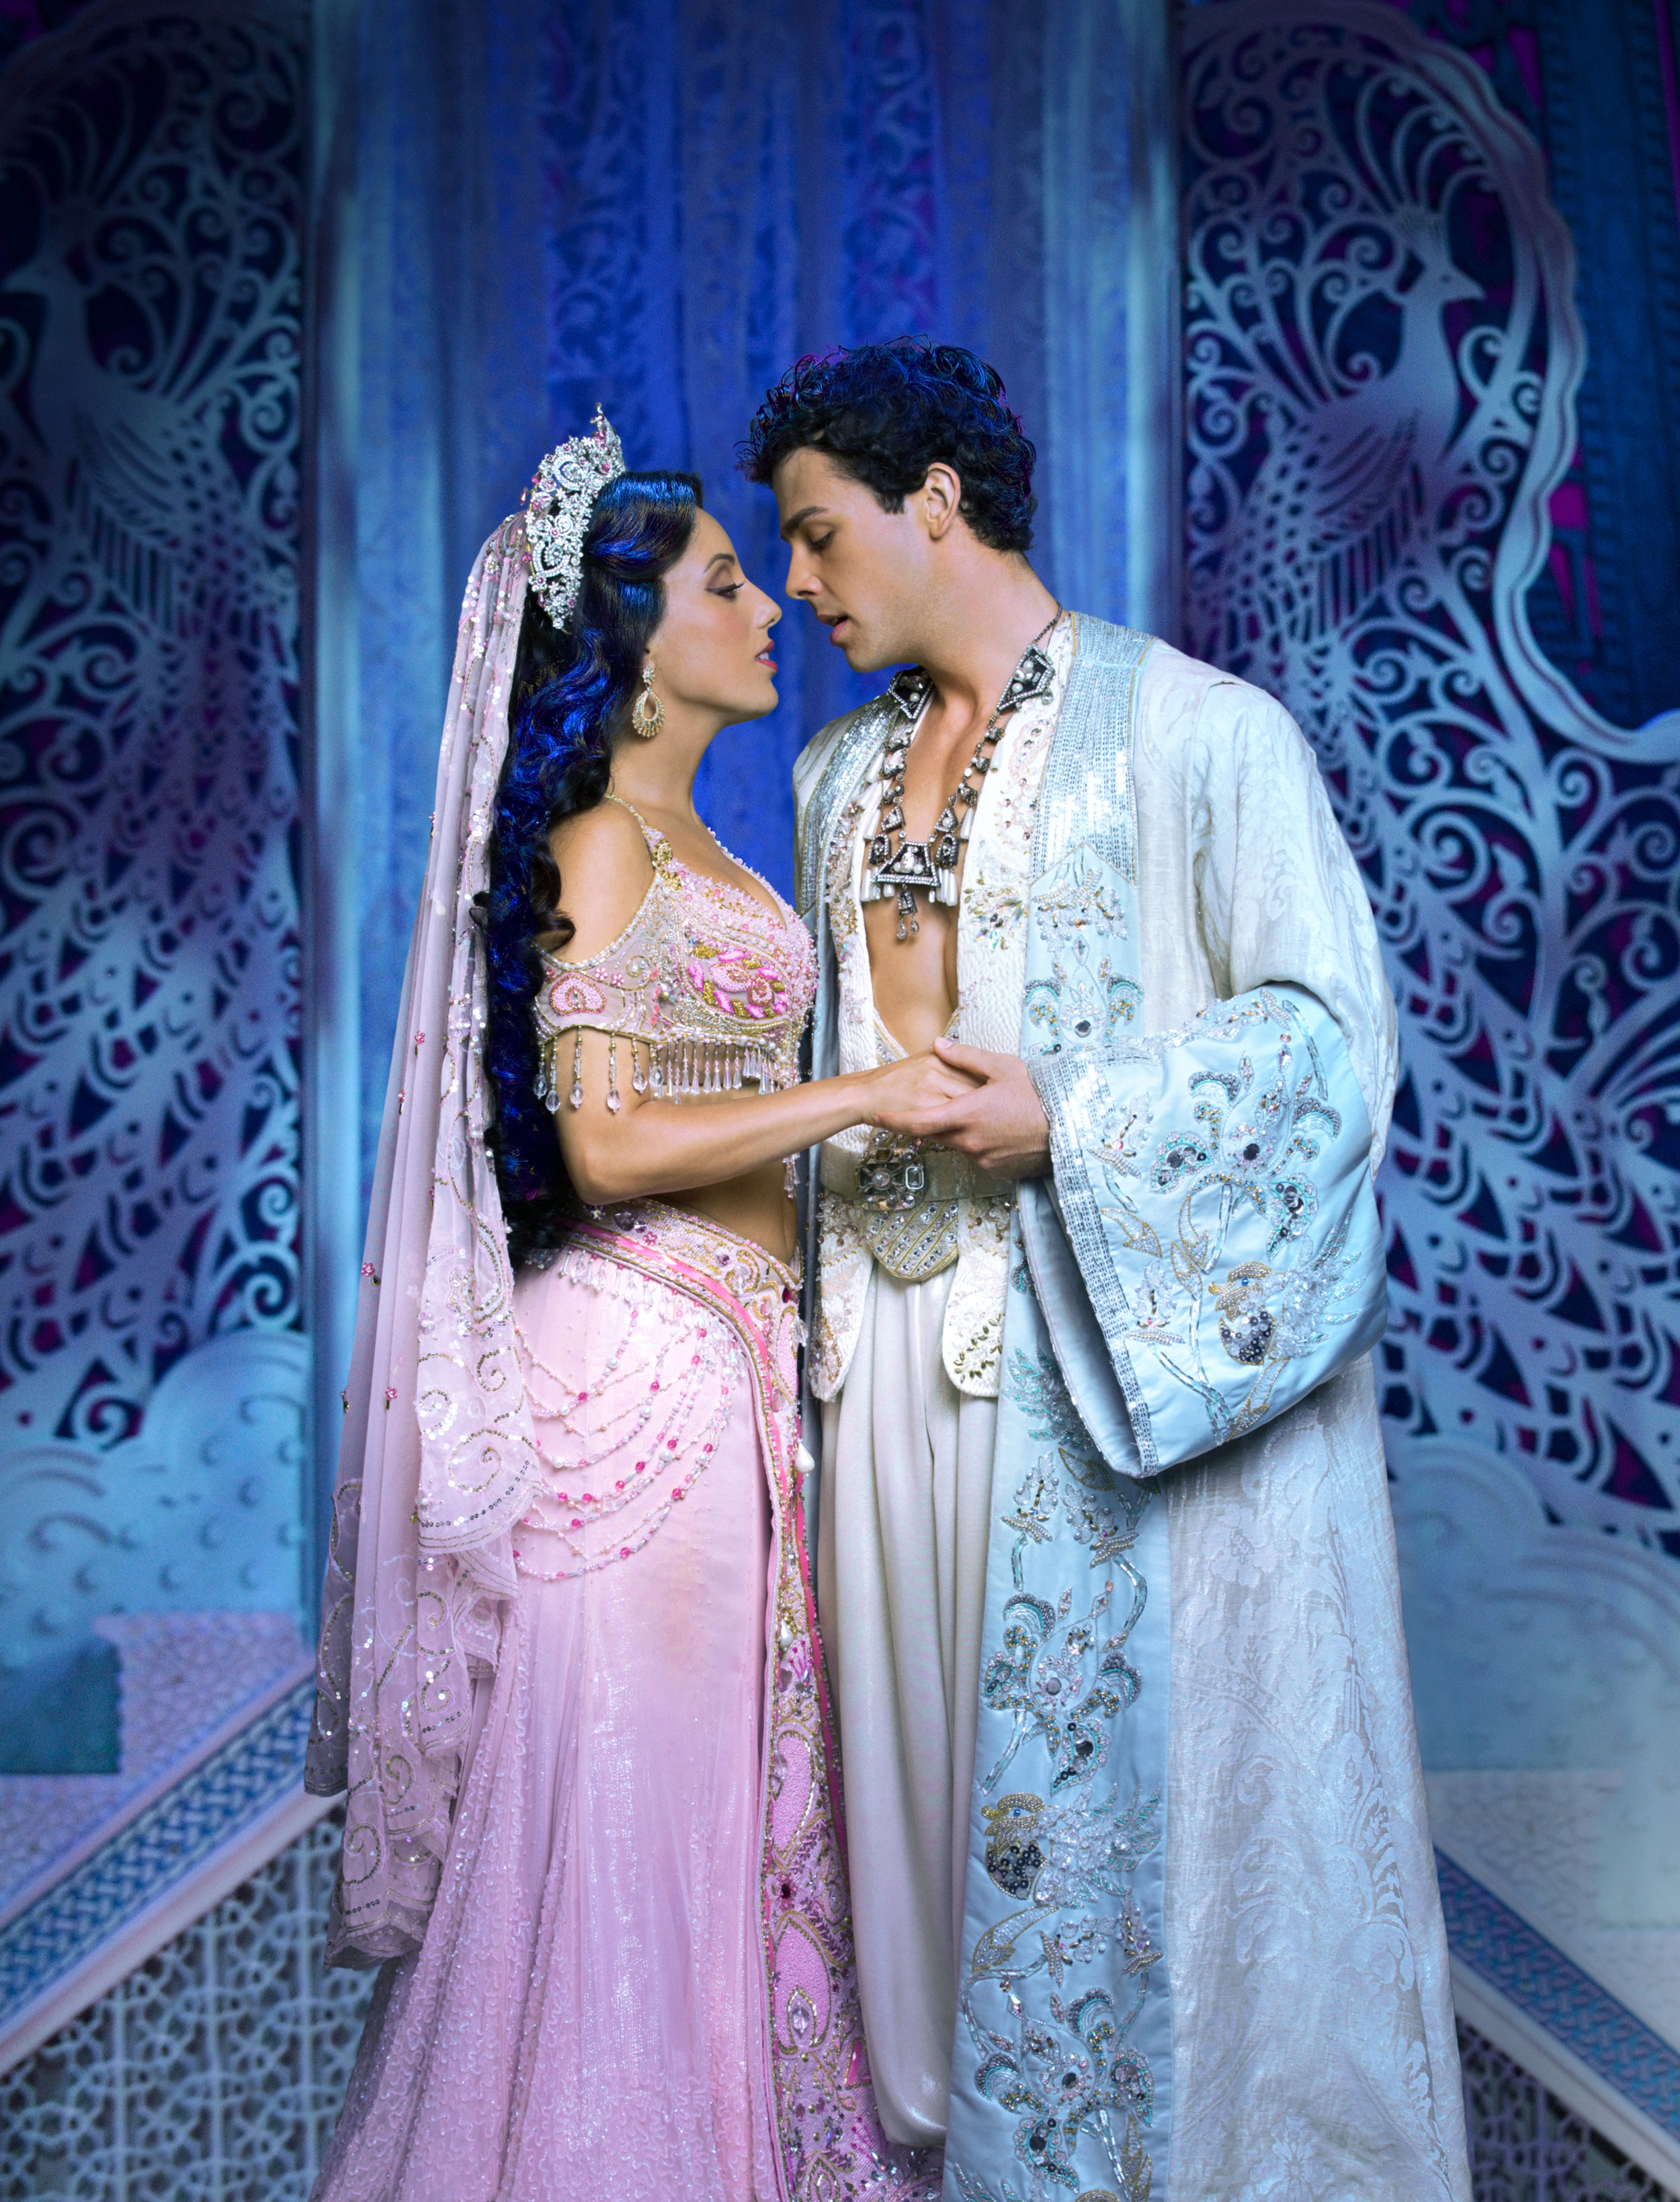 Aladdin The Musical - The Wedding